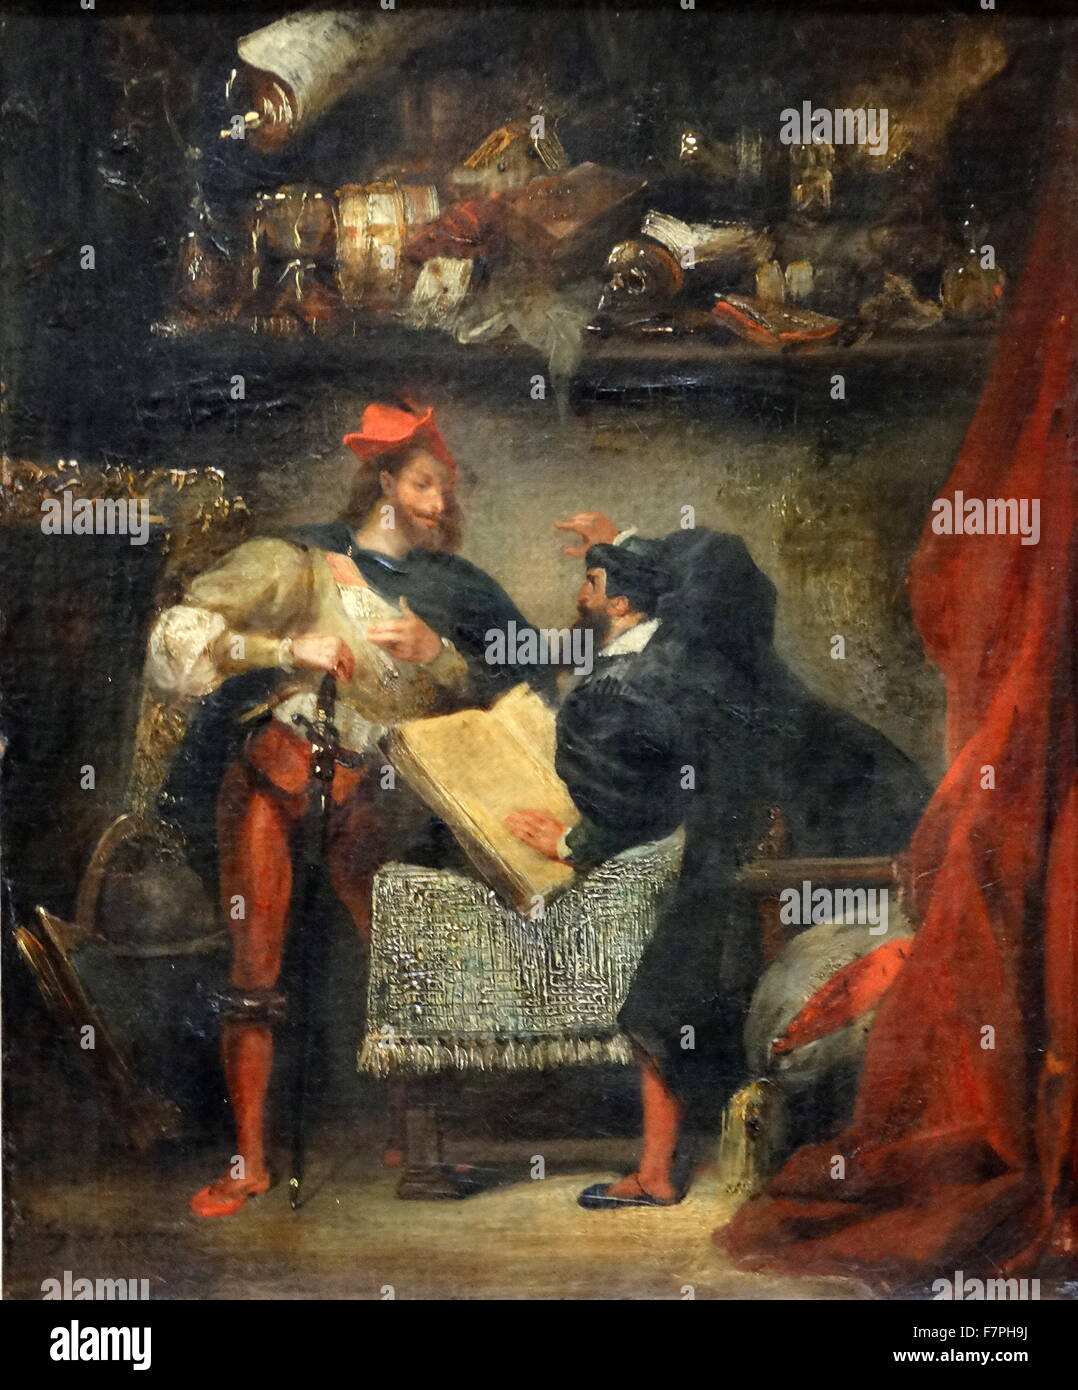 Painting titled 'Faust and Mephistopheles' by Eugène Delacroix (1798-1863) French Romantic artist. Dated 1840 Stock Photo